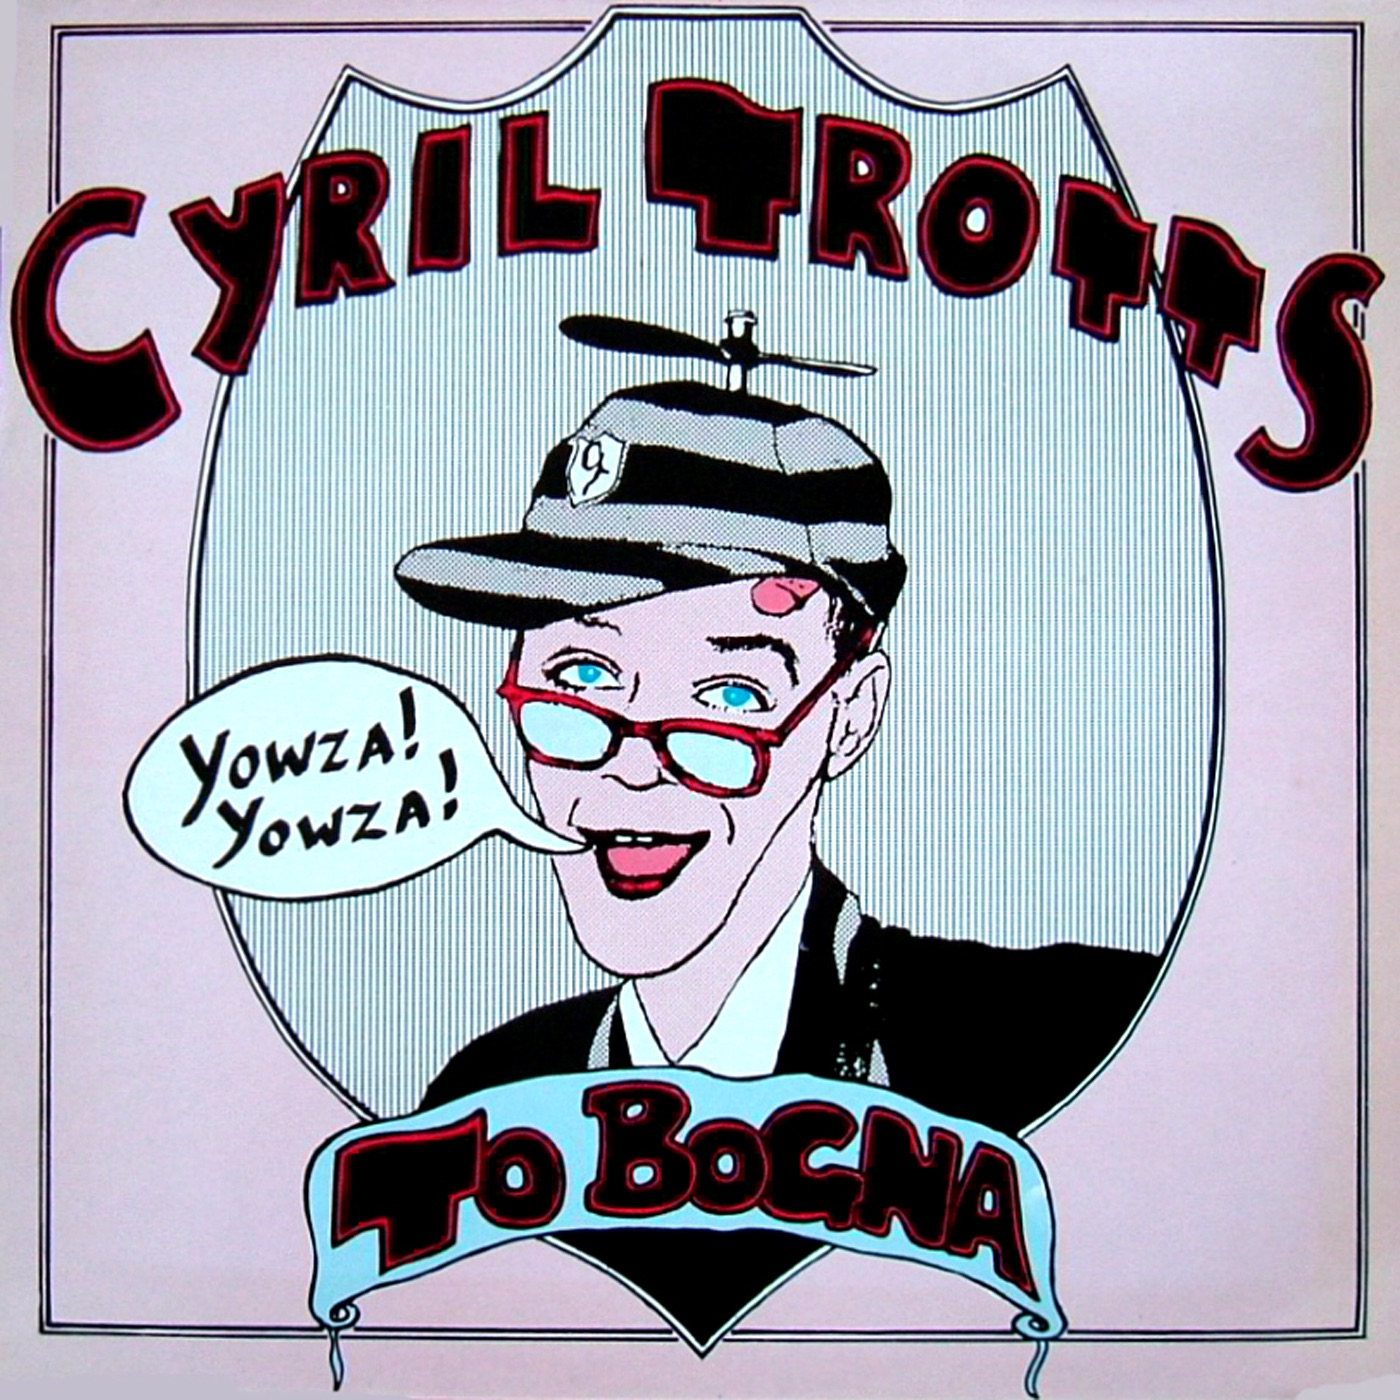 MP3 Songs Online:♫ They're Coming to Take Me Away Ha! Ha! - Cyril Trotts album Cyril Trotts to Bogna - EP. Electronic,Music listen to music online free without downloading.